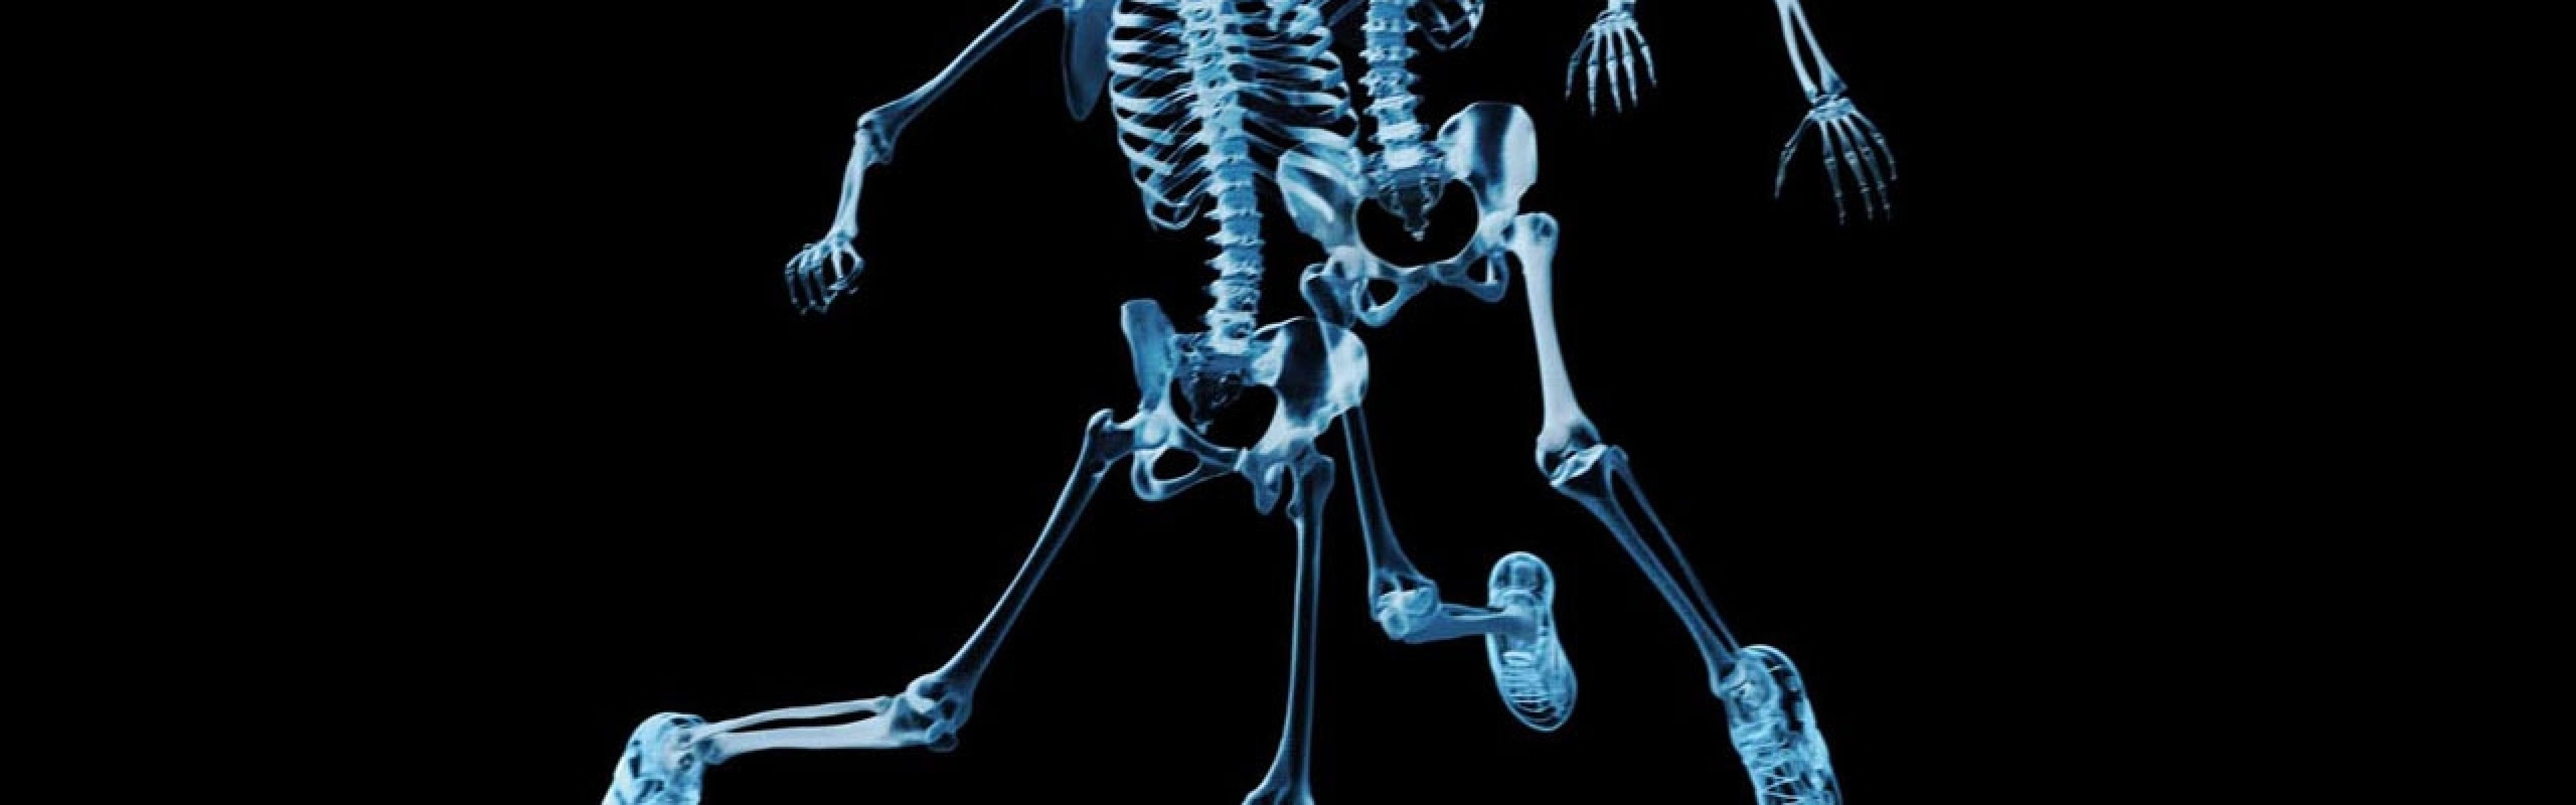 3840x1200  Wallpaper skeletons, ball, football, x-ray, picture